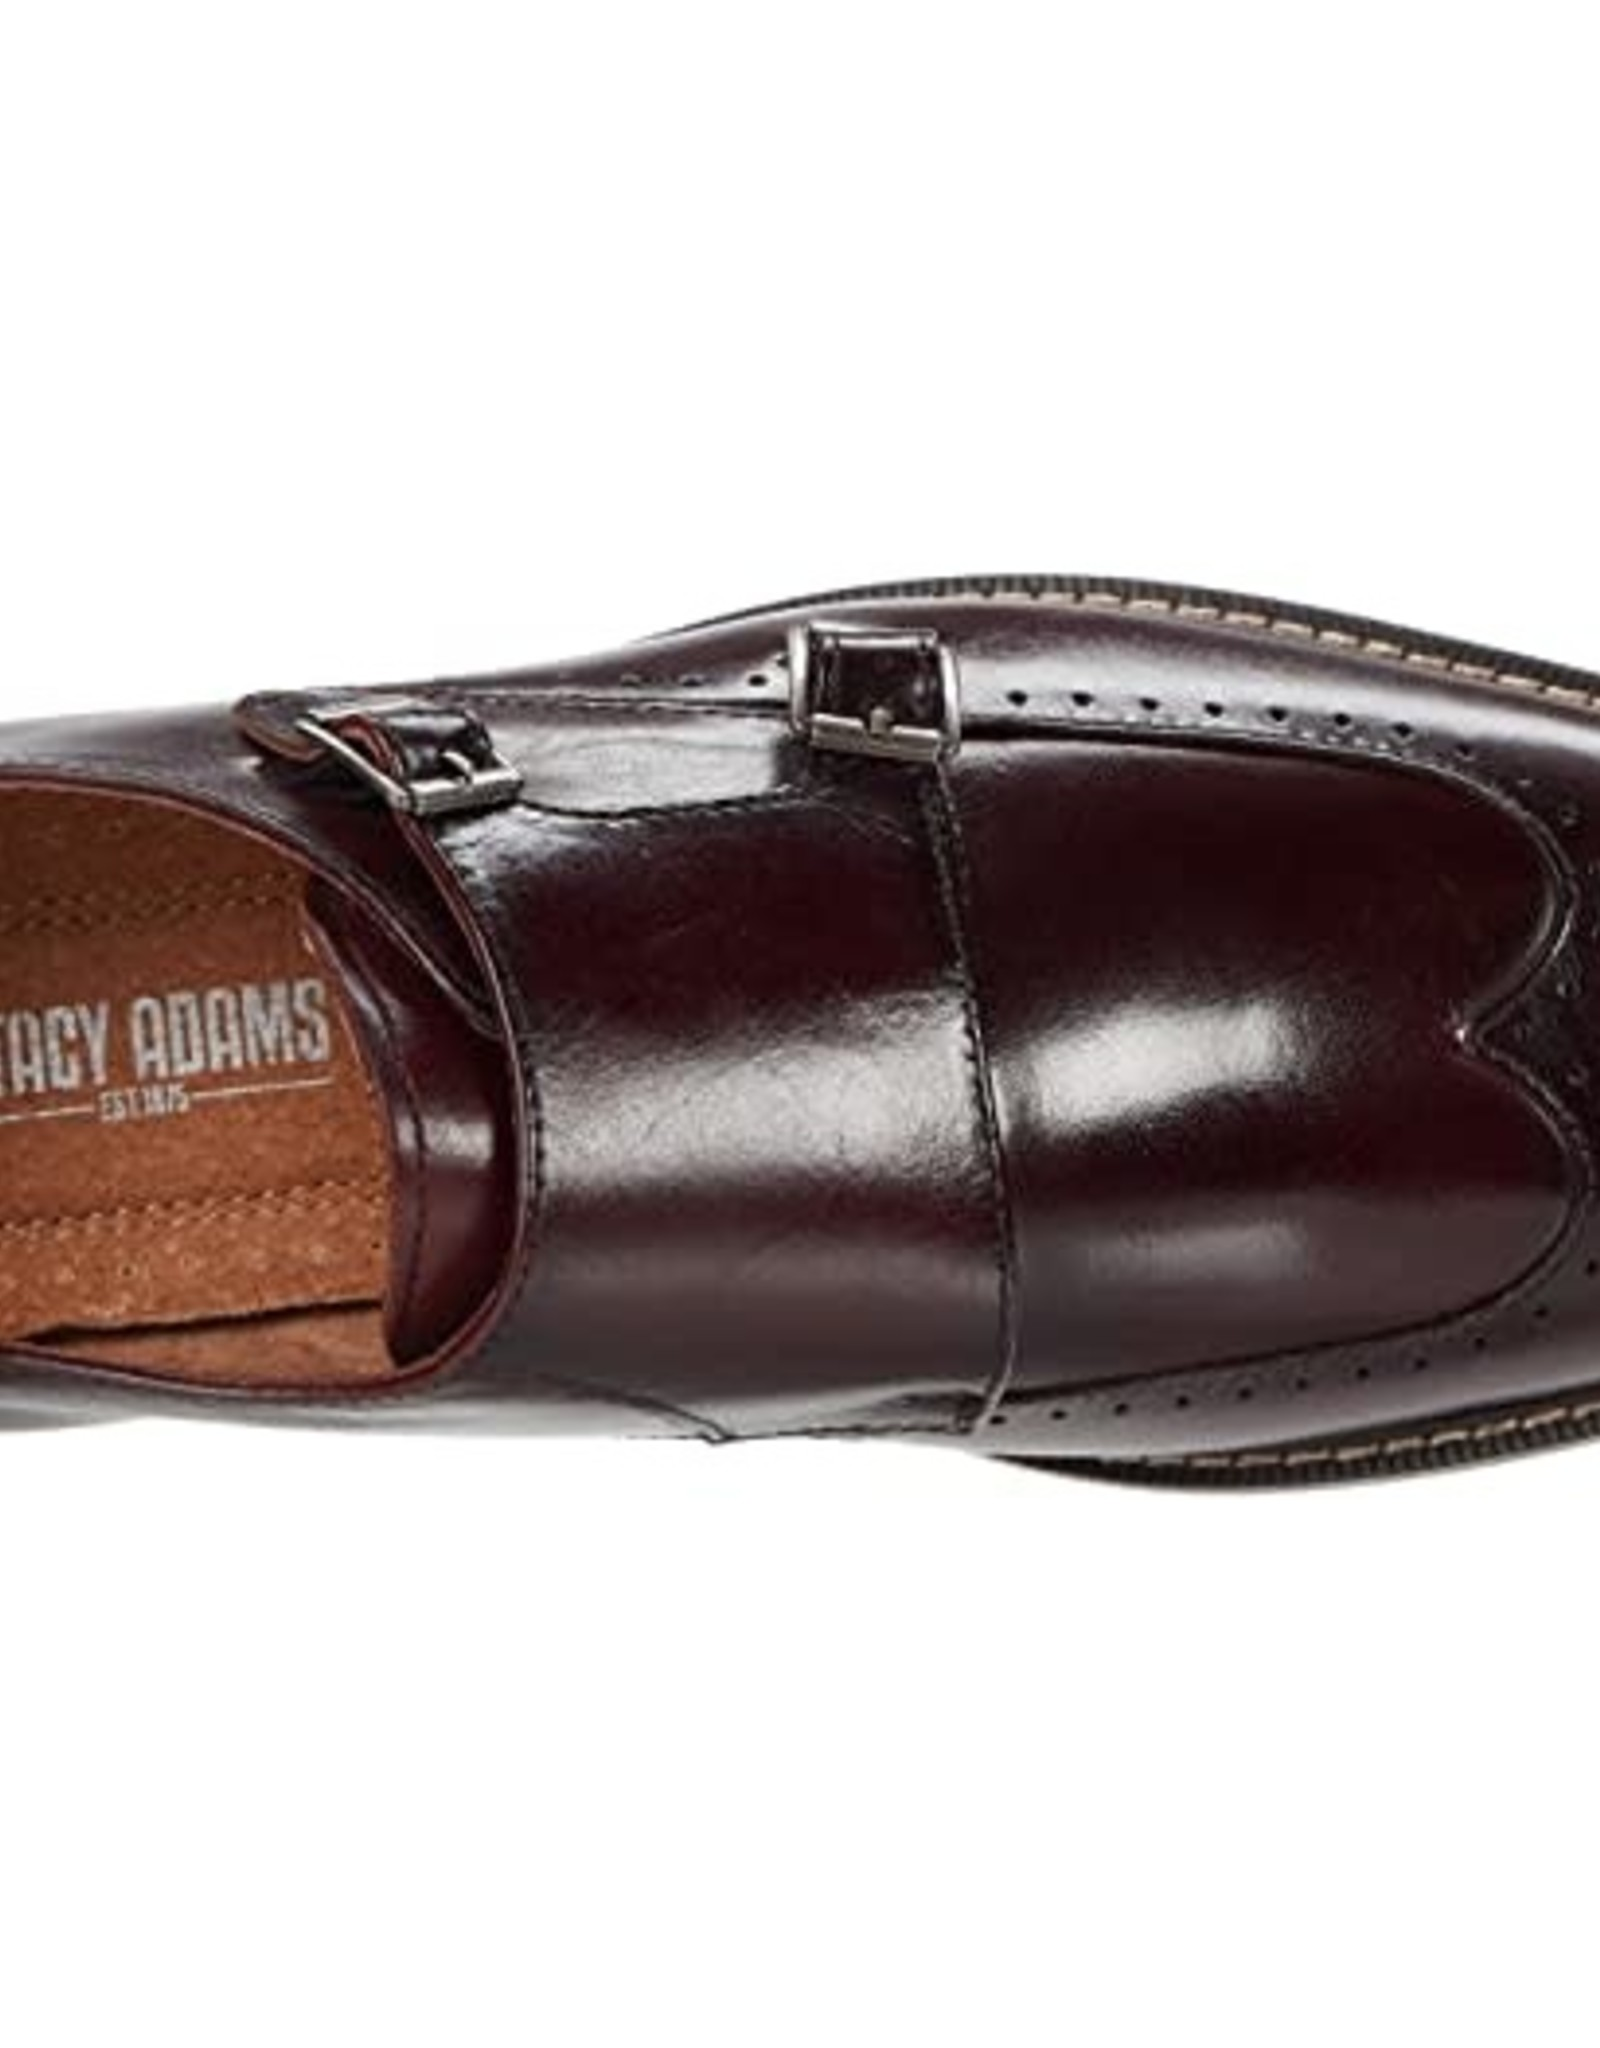 Stacy Adams Shoes Stacy Adams 25410